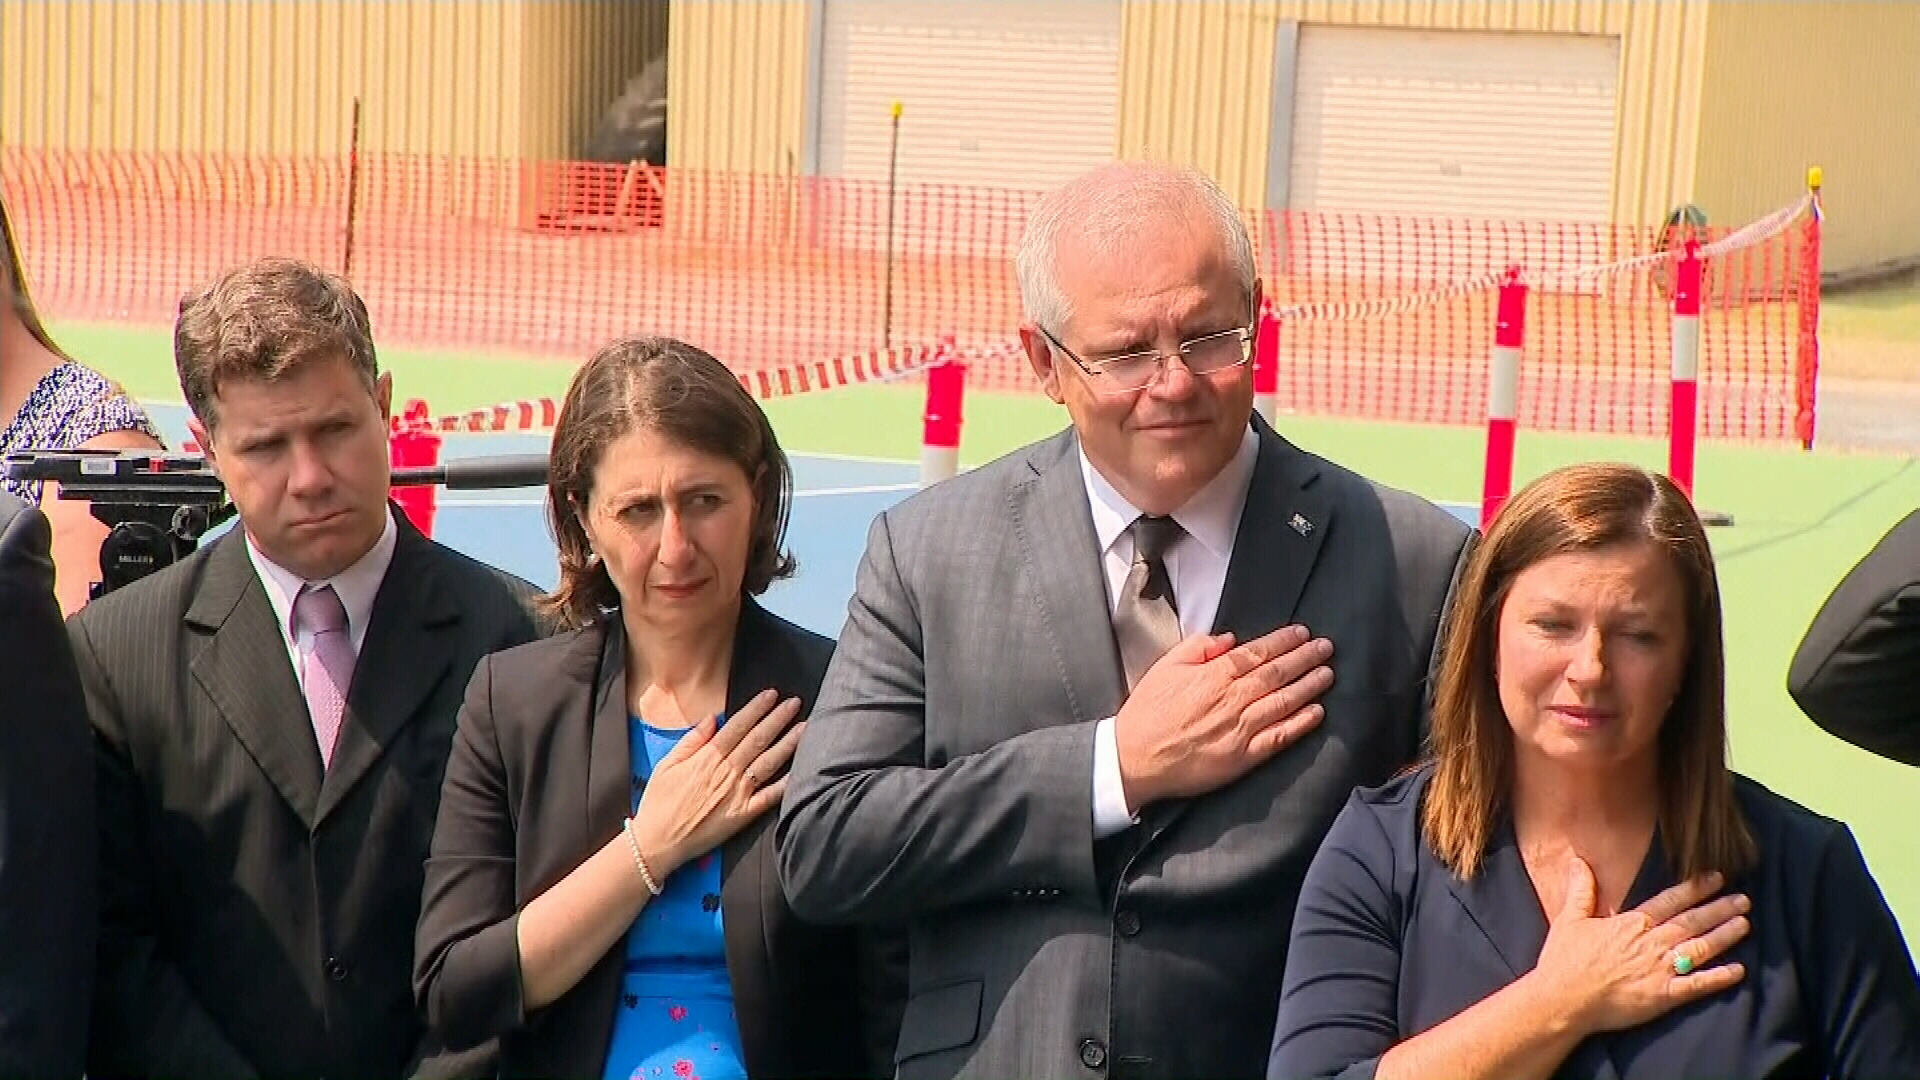 Prime Minister Scott Morrison attended the service with his wife Jenny, and NSW Premier Gladys Berejiklian.